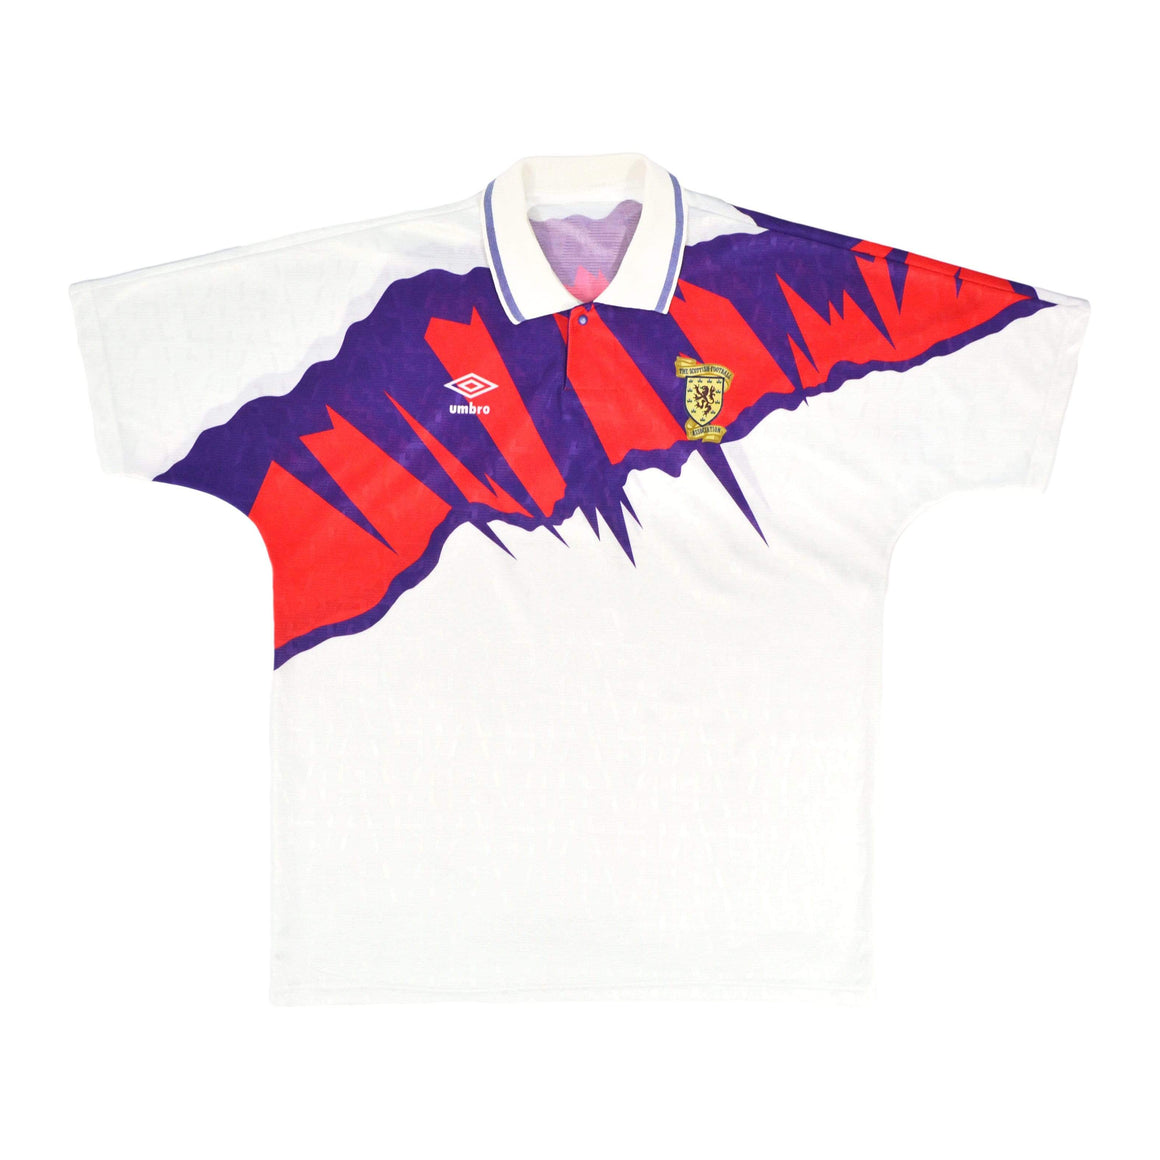 1991-93 Umbro Scotland Away Shirt L - Football Shirt Collective